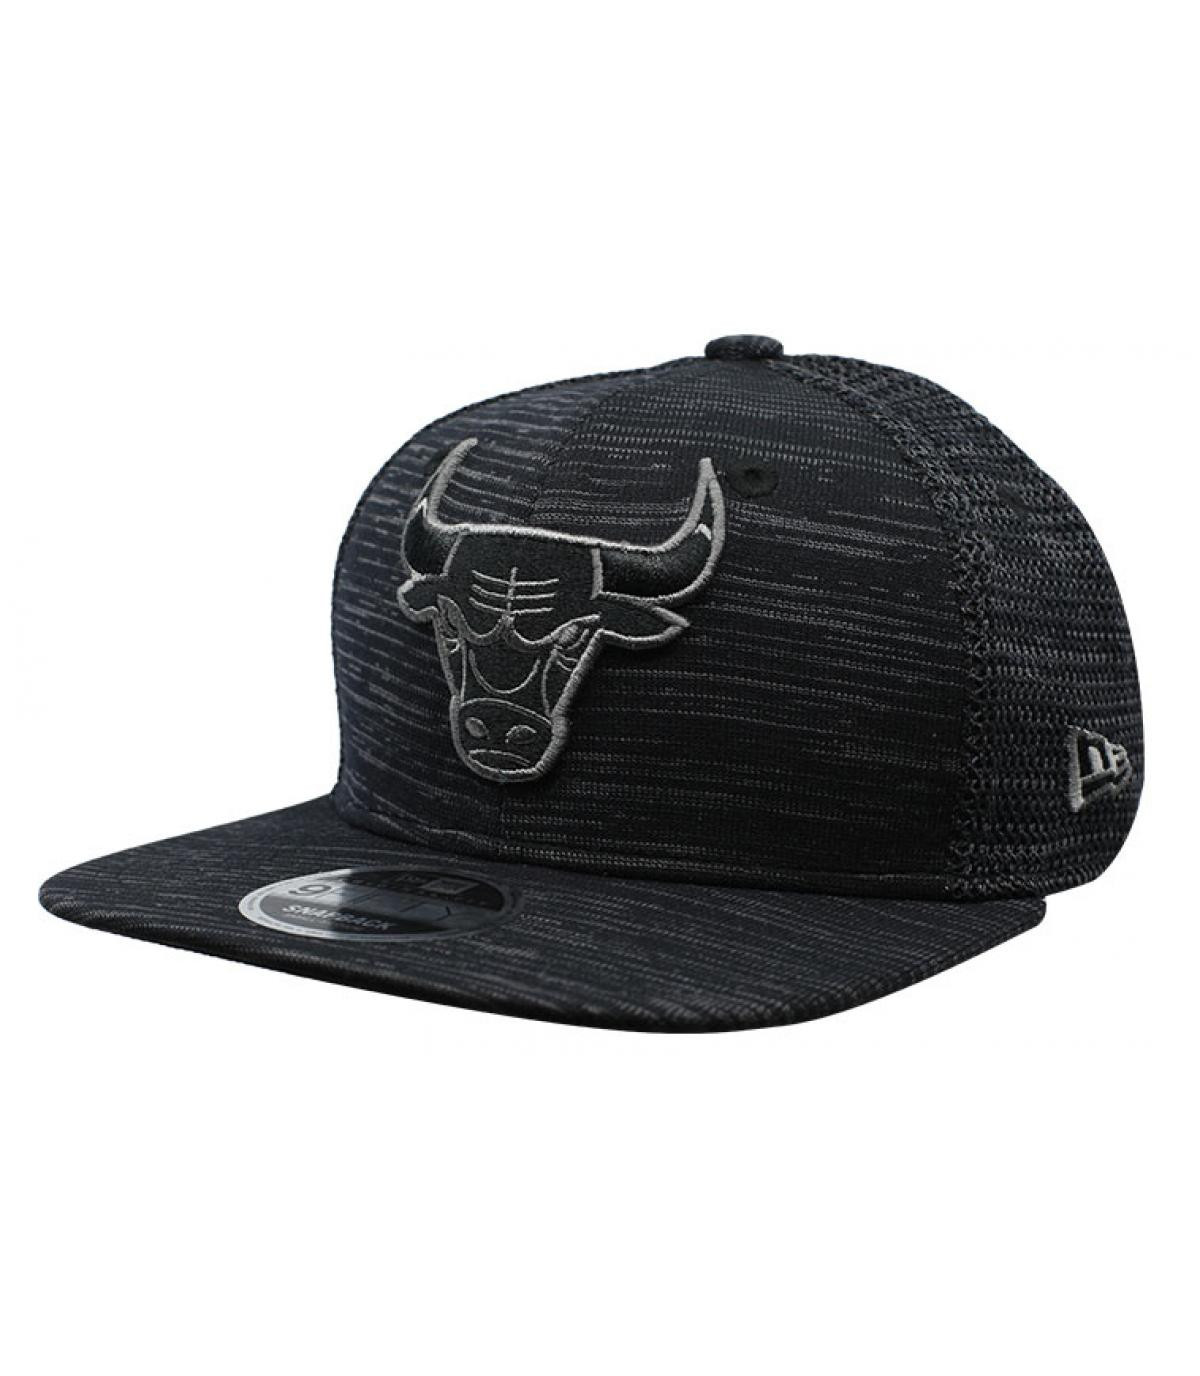 Détails Engineered Fit Bulls 9Fifty black - image 2